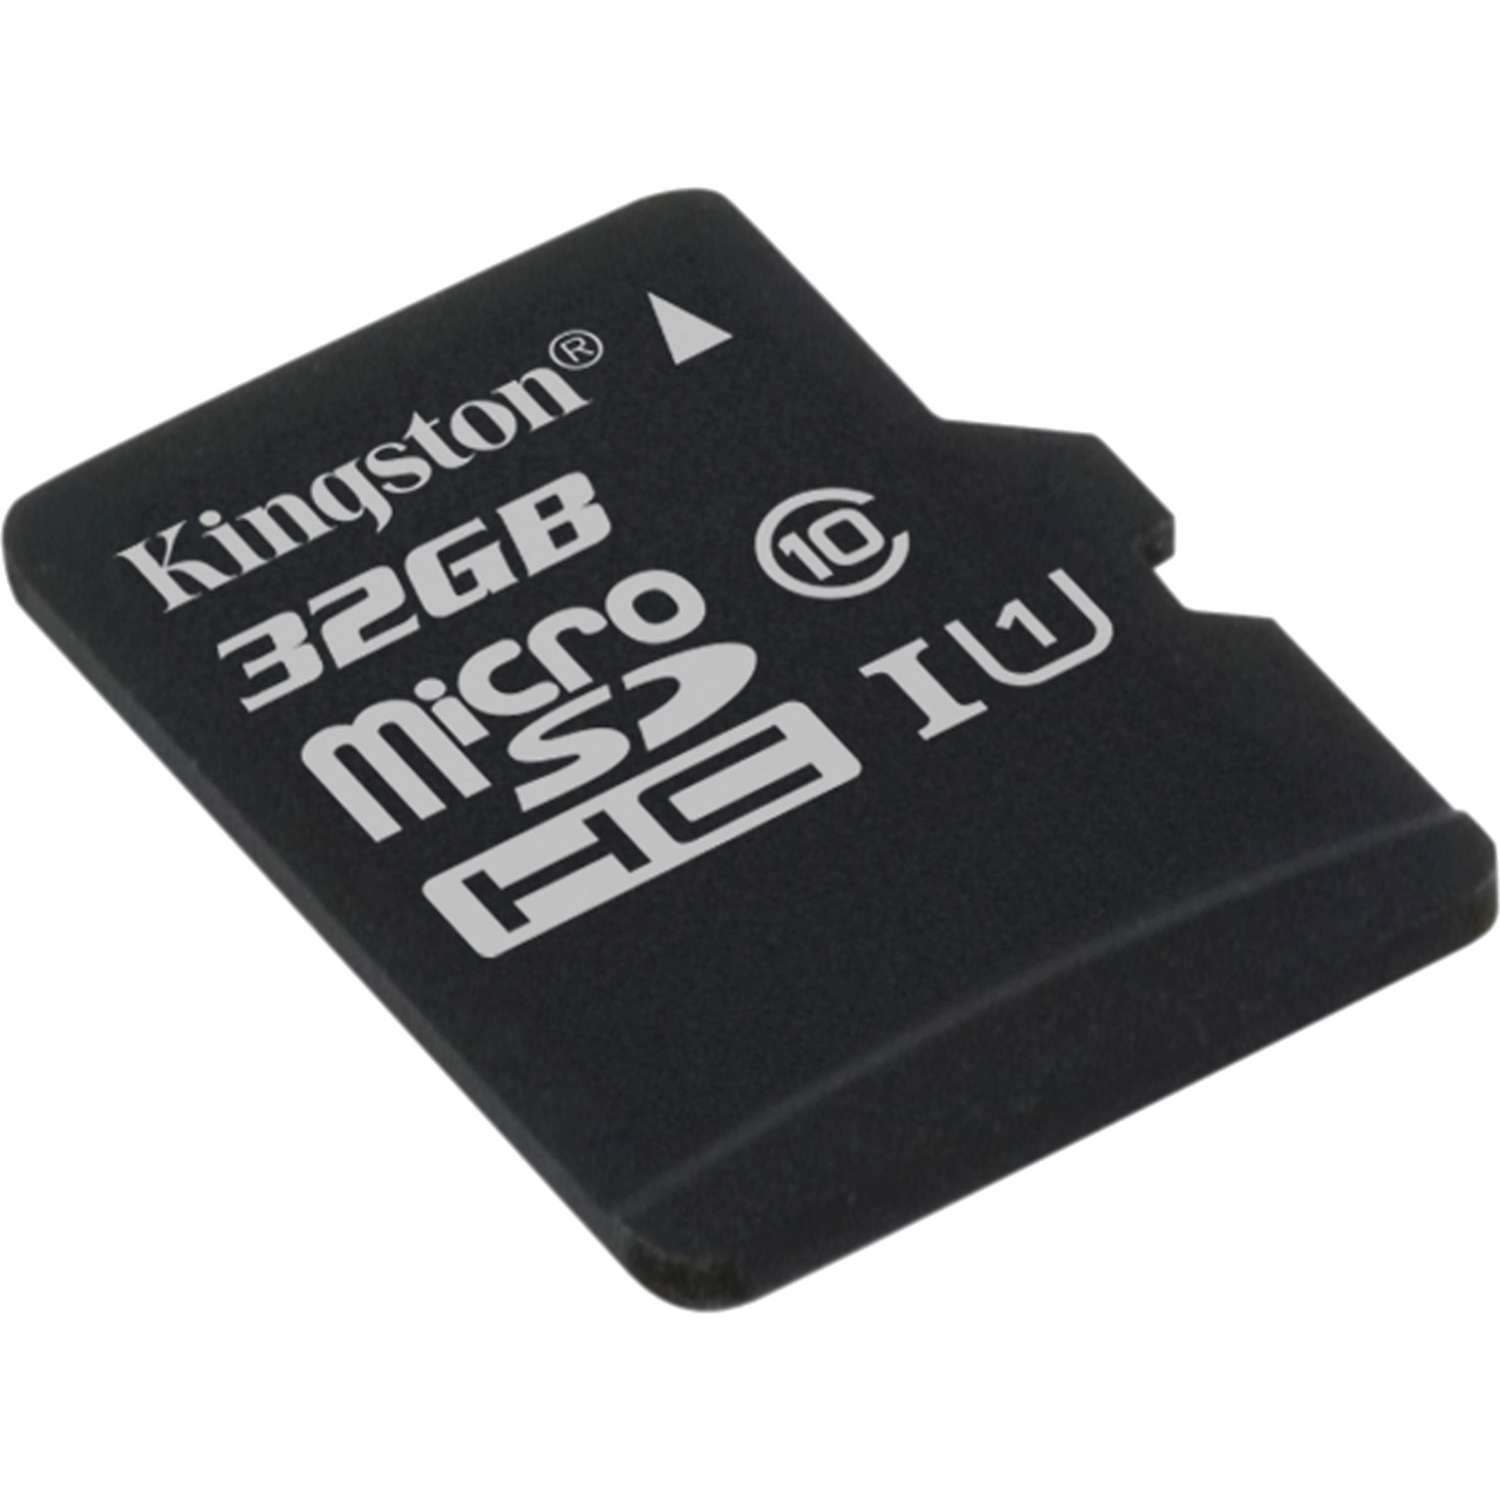 Kingston 32GB microSDHC Class 10 UHS-I 45R Flash Card without Adapter